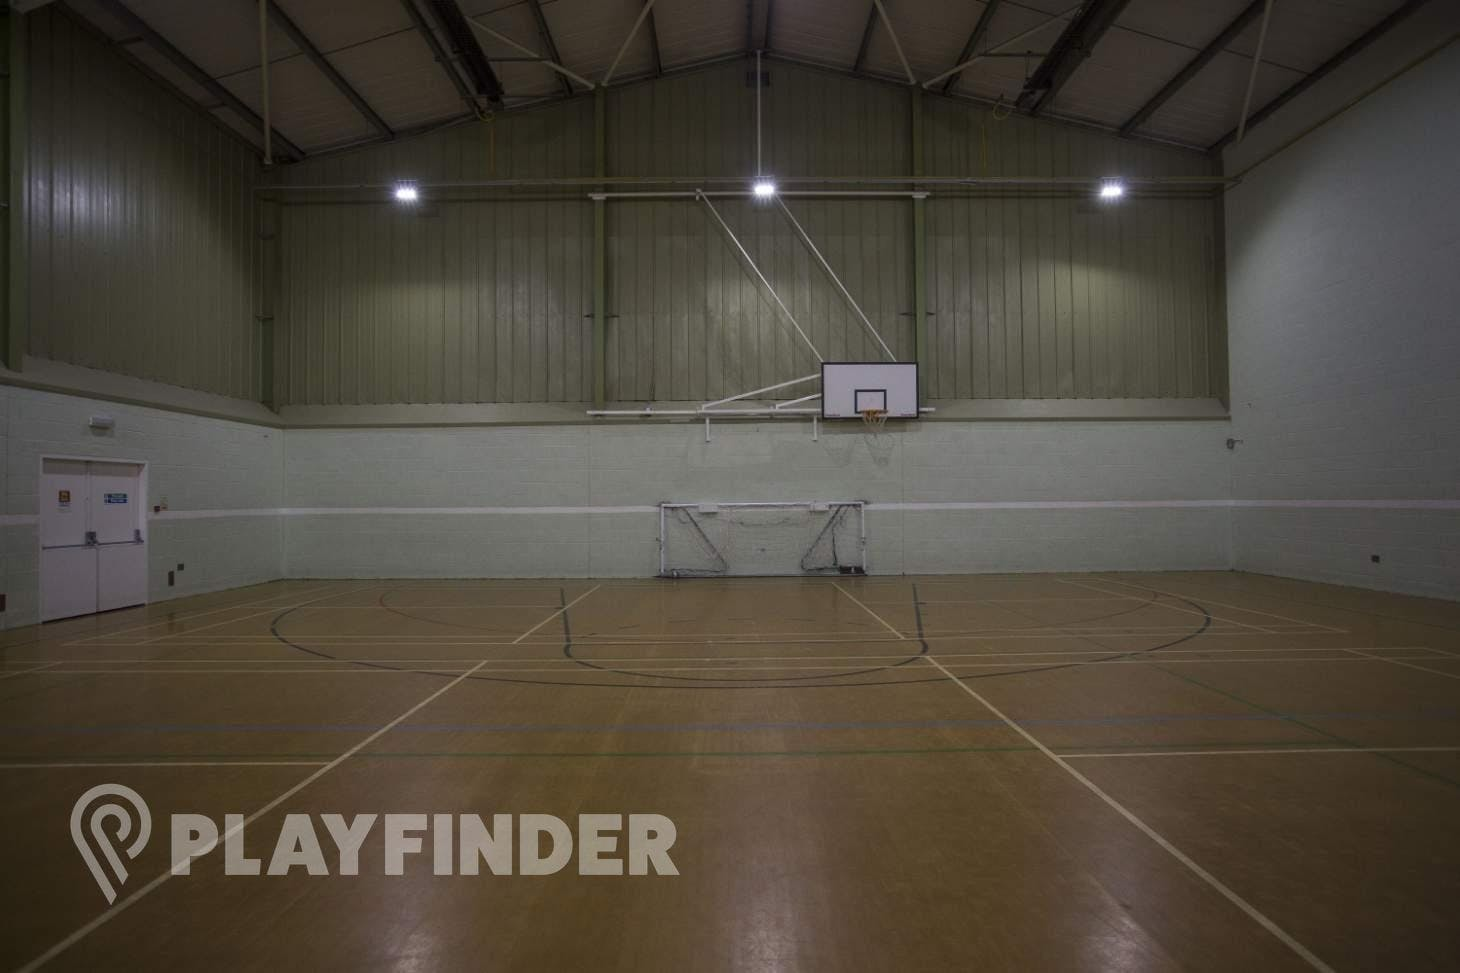 Redbourn Leisure Centre Indoor basketball court